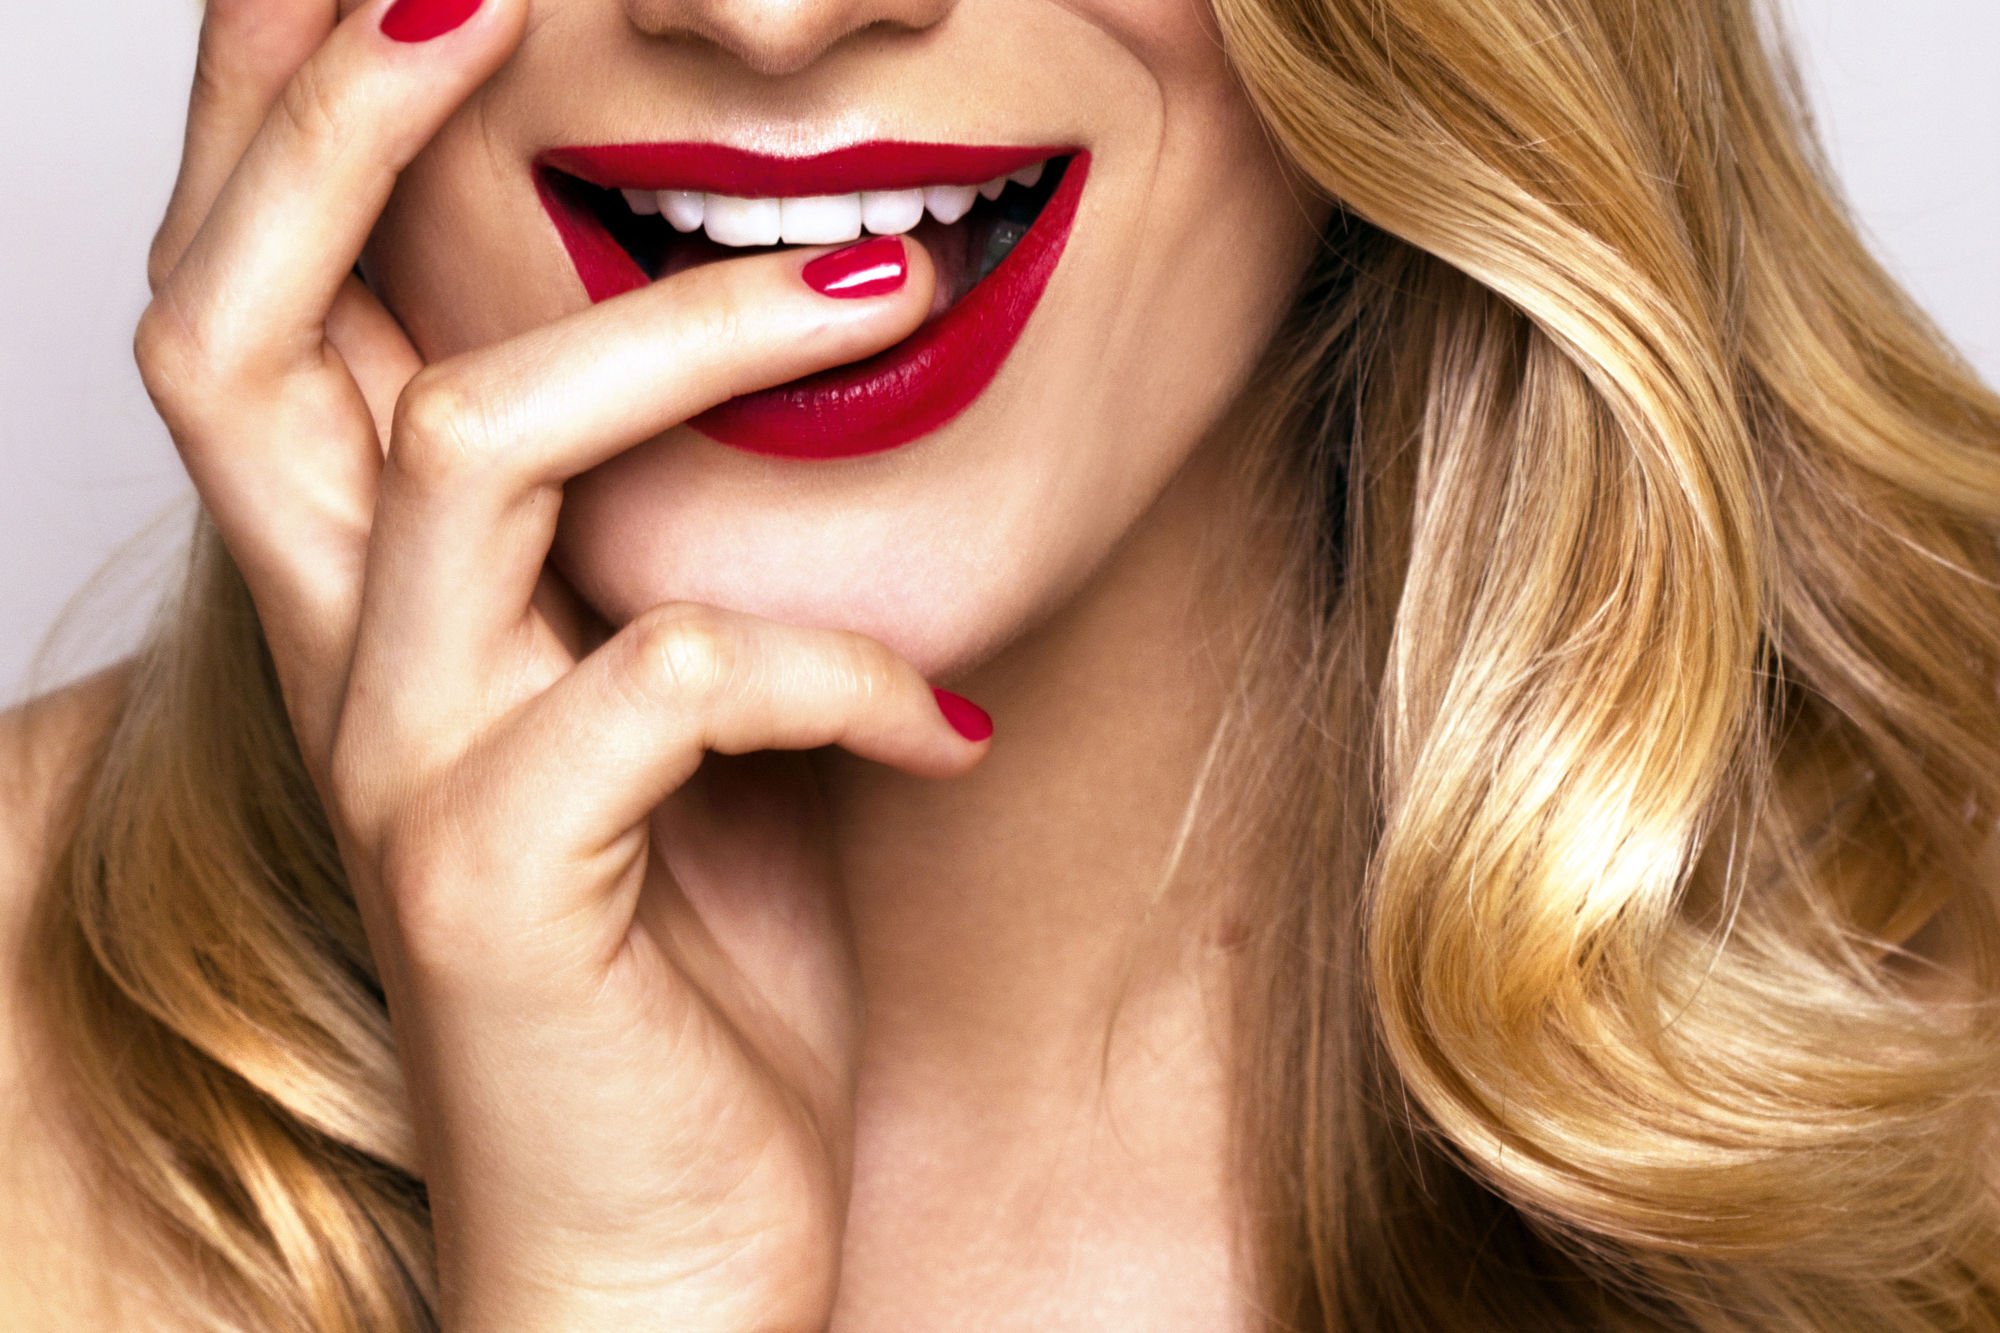 This Genius Product Will Help Kick Your Nail-Biting Habit